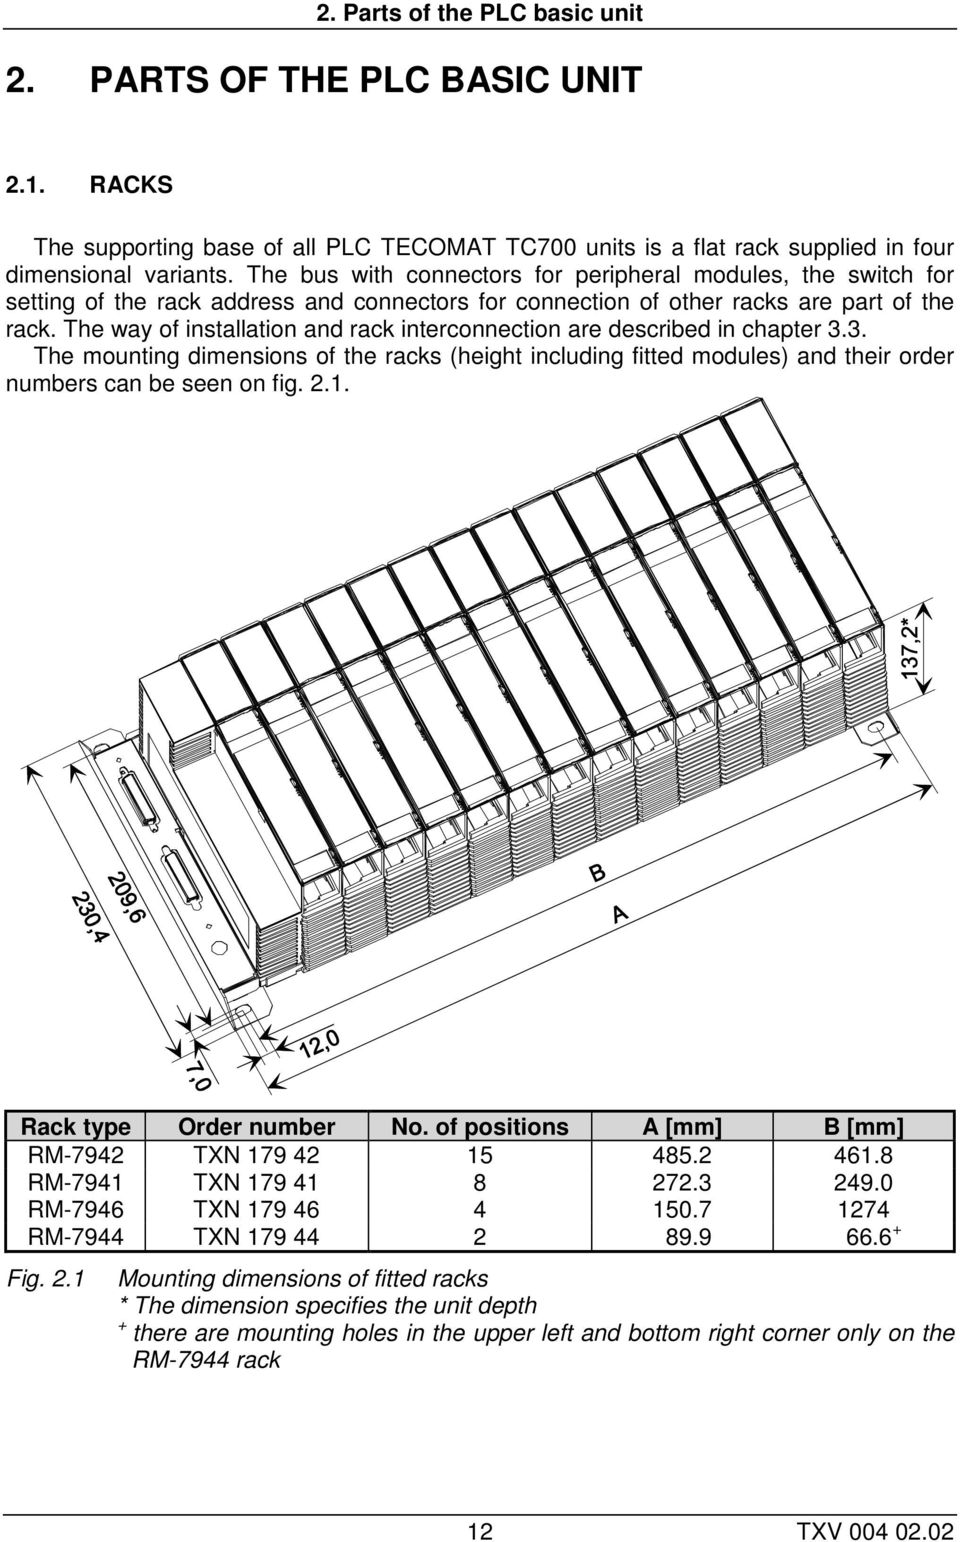 The way of installation and rack interconnection are described in chapter 3.3. The mounting dimensions of the racks (height including fitted modules) and their order numbers can be seen on fig. 2.1.